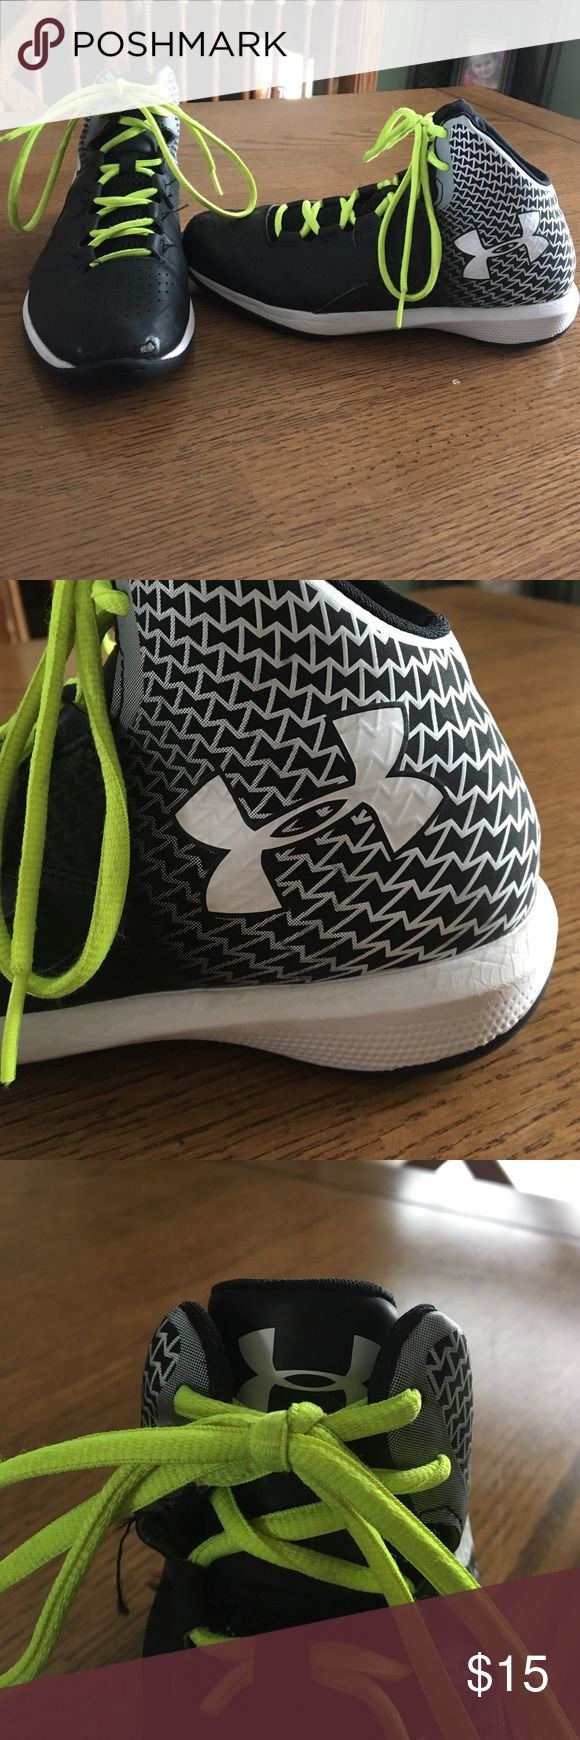 Youth basketball shoes Under armour basketball shoes with neon yellow laces Under Armour Shoes